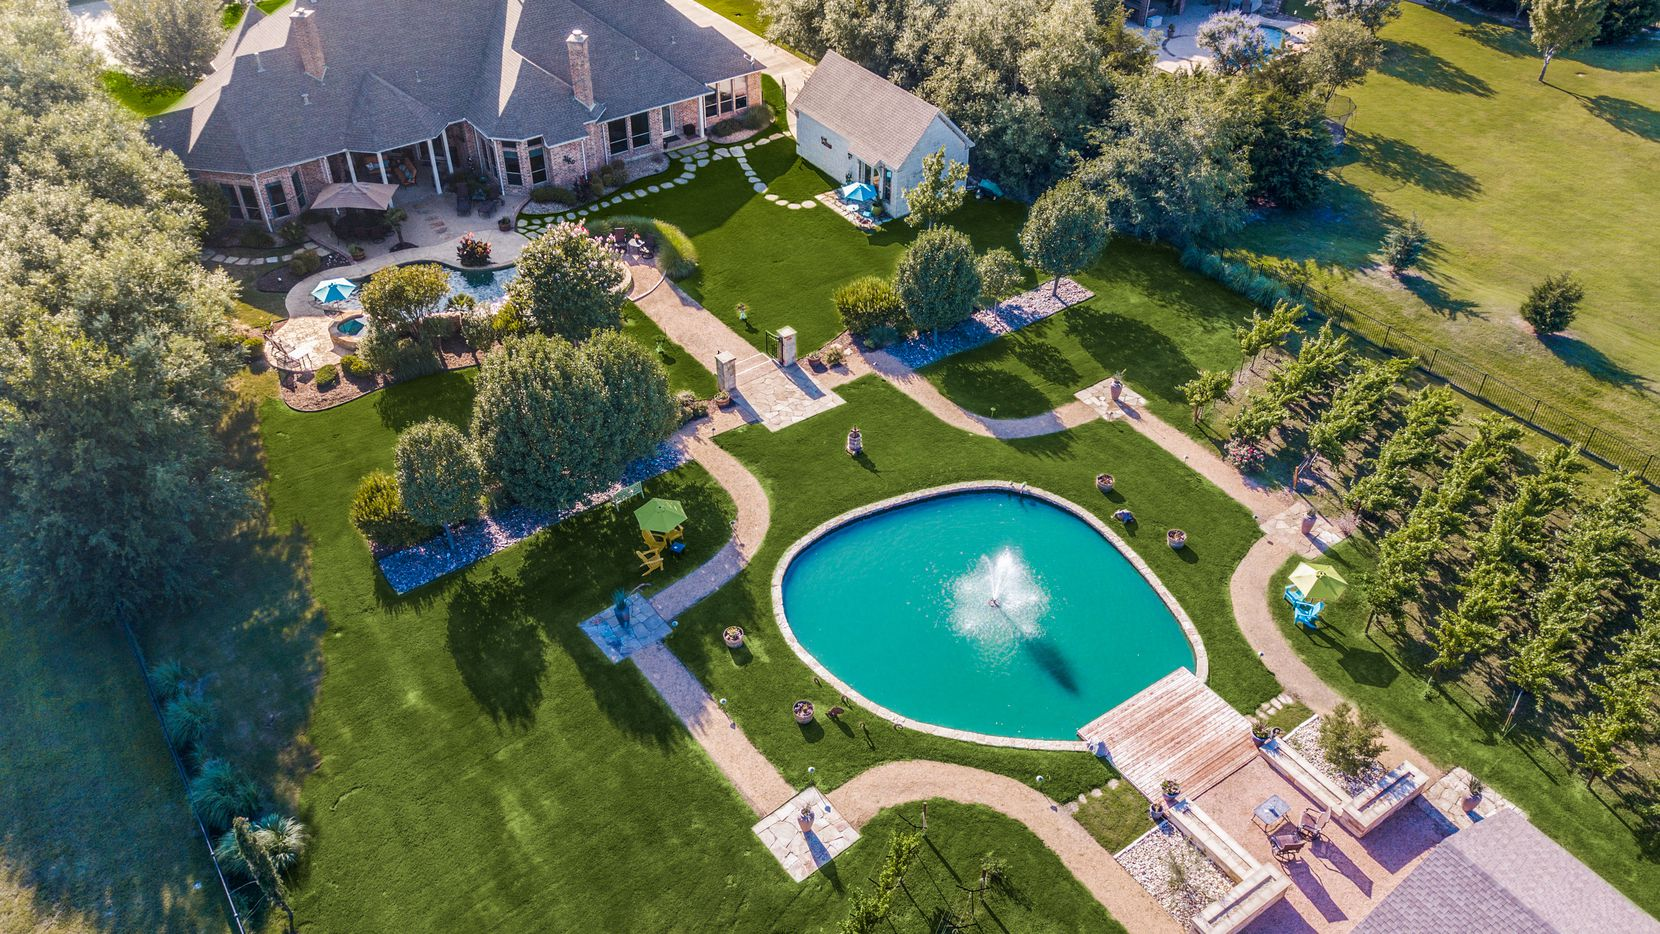 The $1.7 million estate has a private vineyard out back.